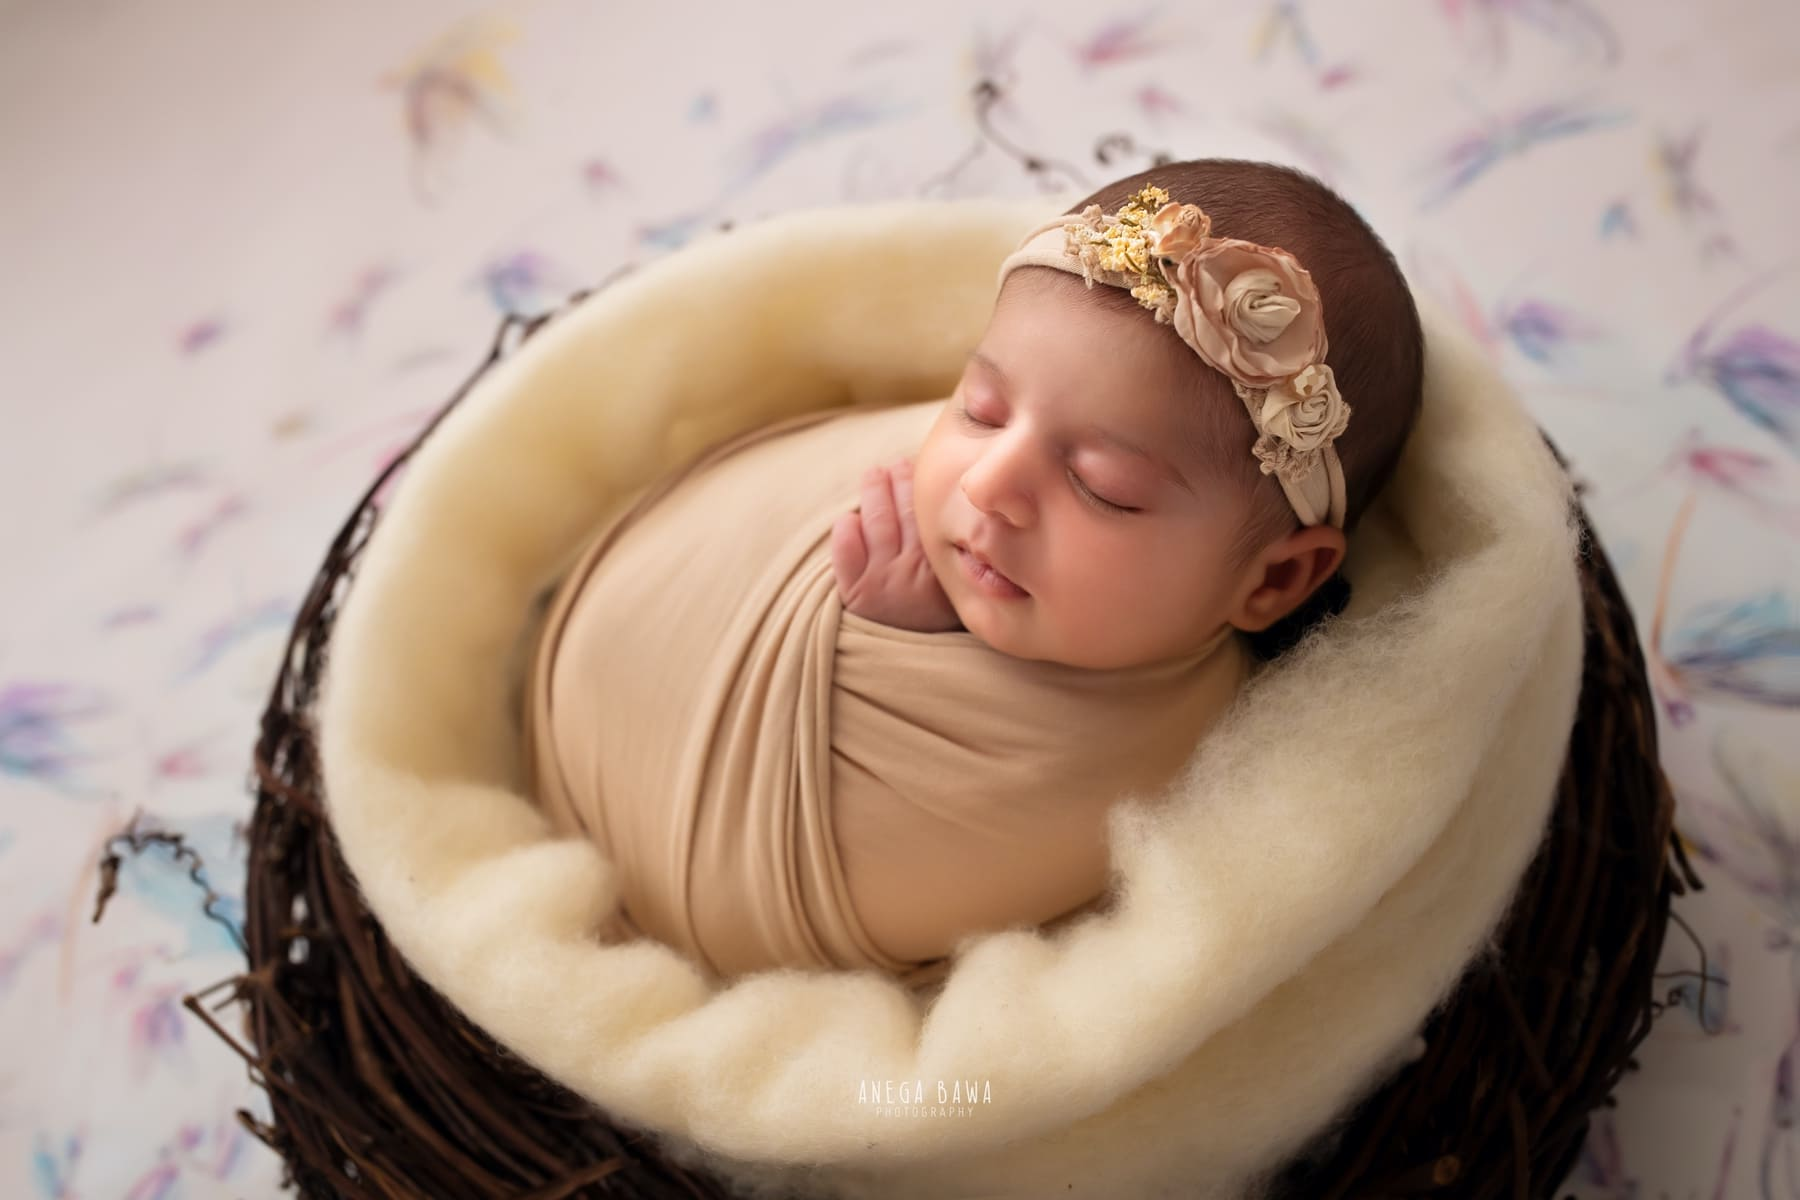 colorful dragonfly white newborn photography delhi 17 days baby girl photoshoot gurgaon anega bawa